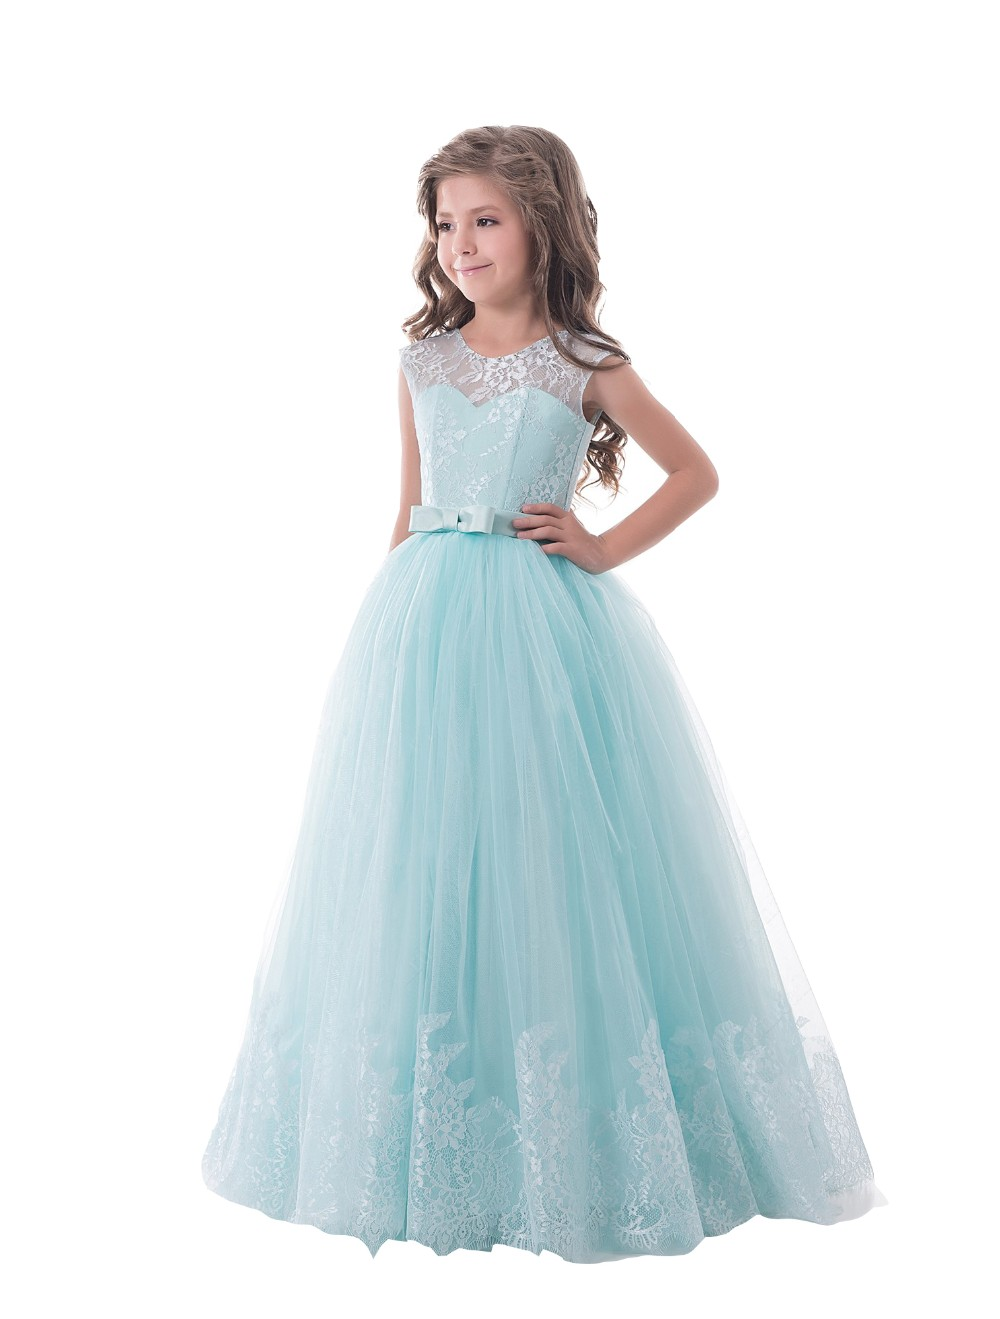 A-Line Flower Girl Dress Mint Green Sleeveless O-neck Little Girl Pageant Dresses Kids Party Dress Lace Mother Daughter Dresses women s stylish v neck sleeveless green print dress